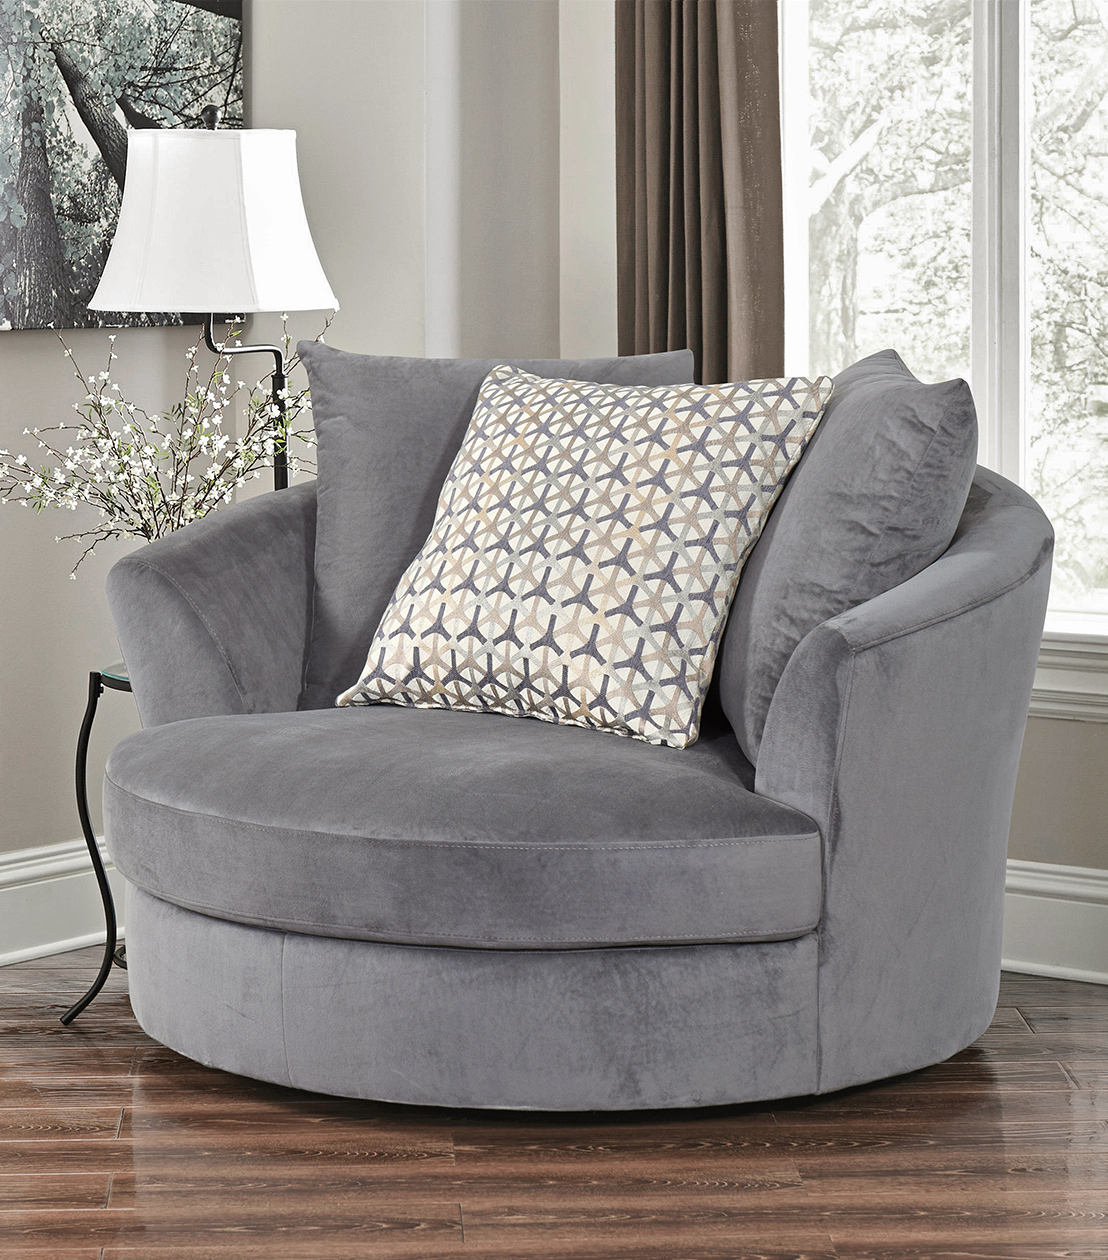 2019 Grey Swivel Chairs Regarding Chairs : Tanya Swivel Chair, Grey (Gallery 5 of 20)